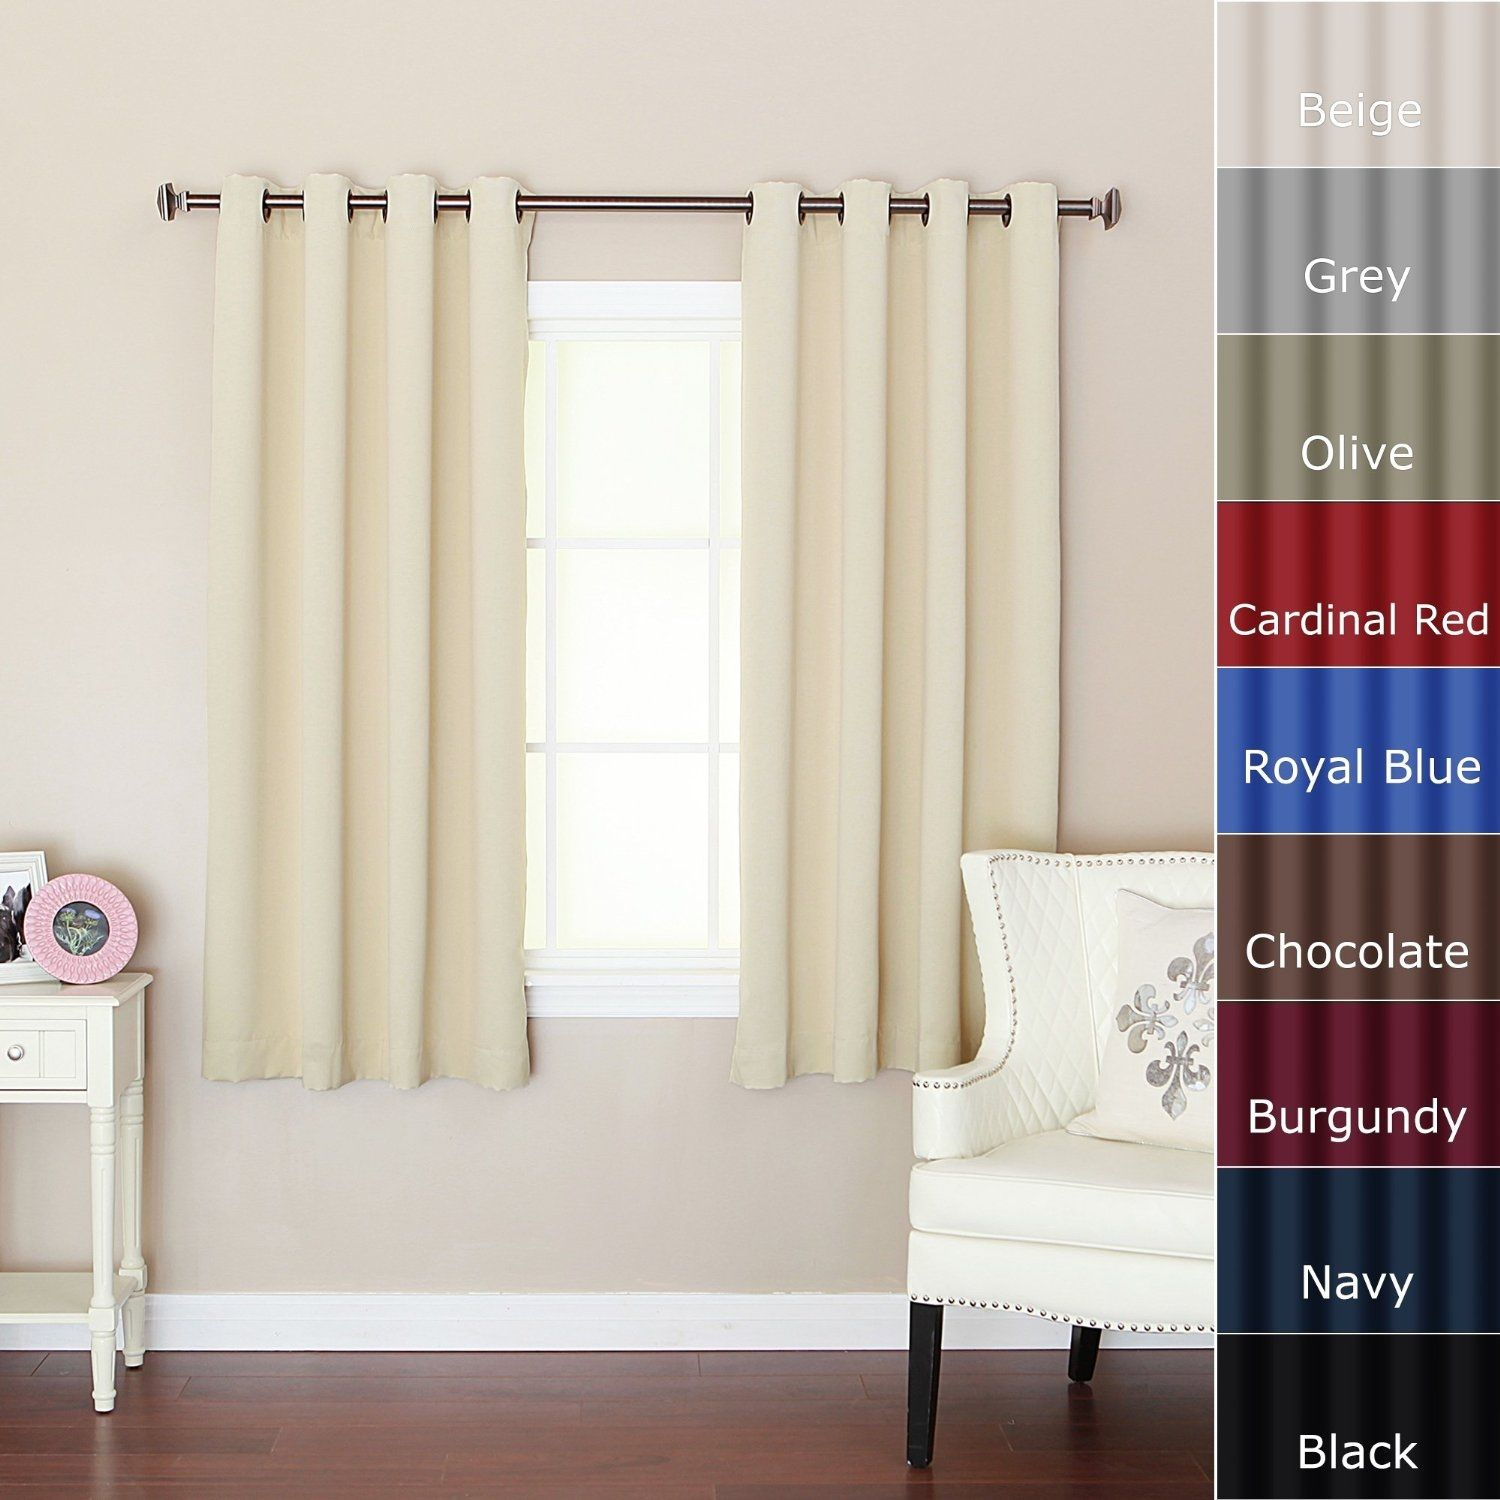 Curtain Length For Small Bedroom Window Small window